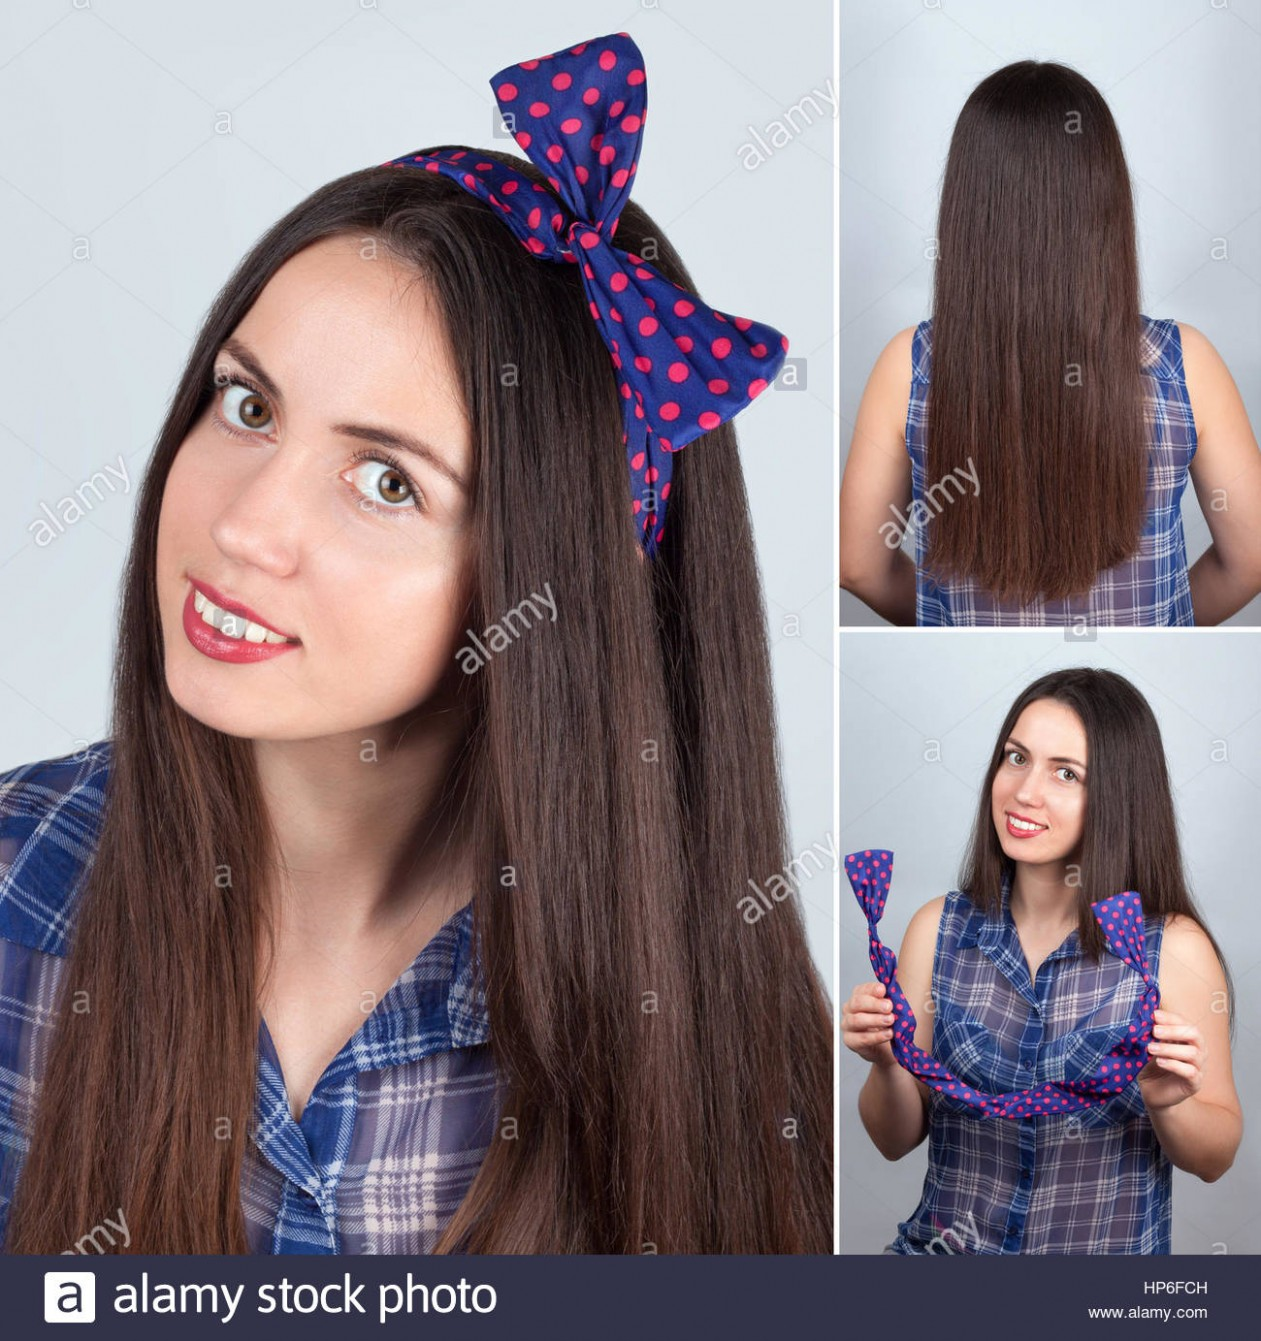 simple hairstyle for long hair tutorial. Hairstyle for long hair